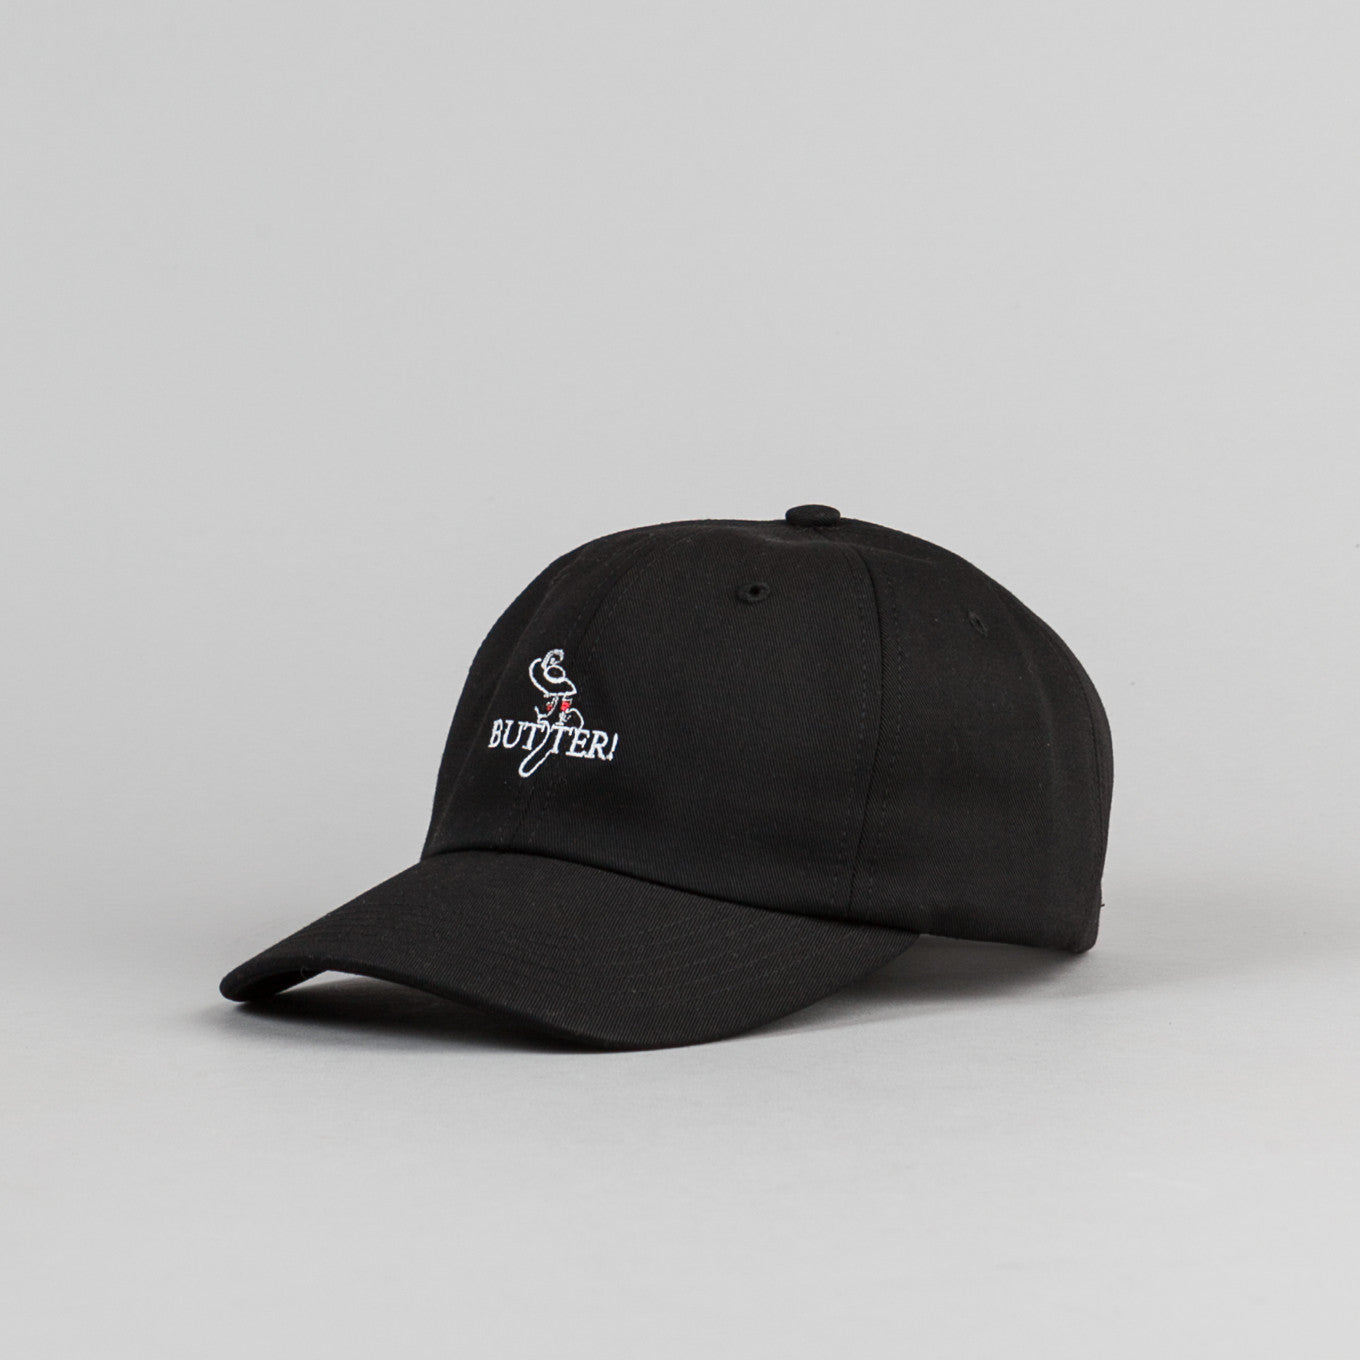 Butter Goods Bistro Cap - Black